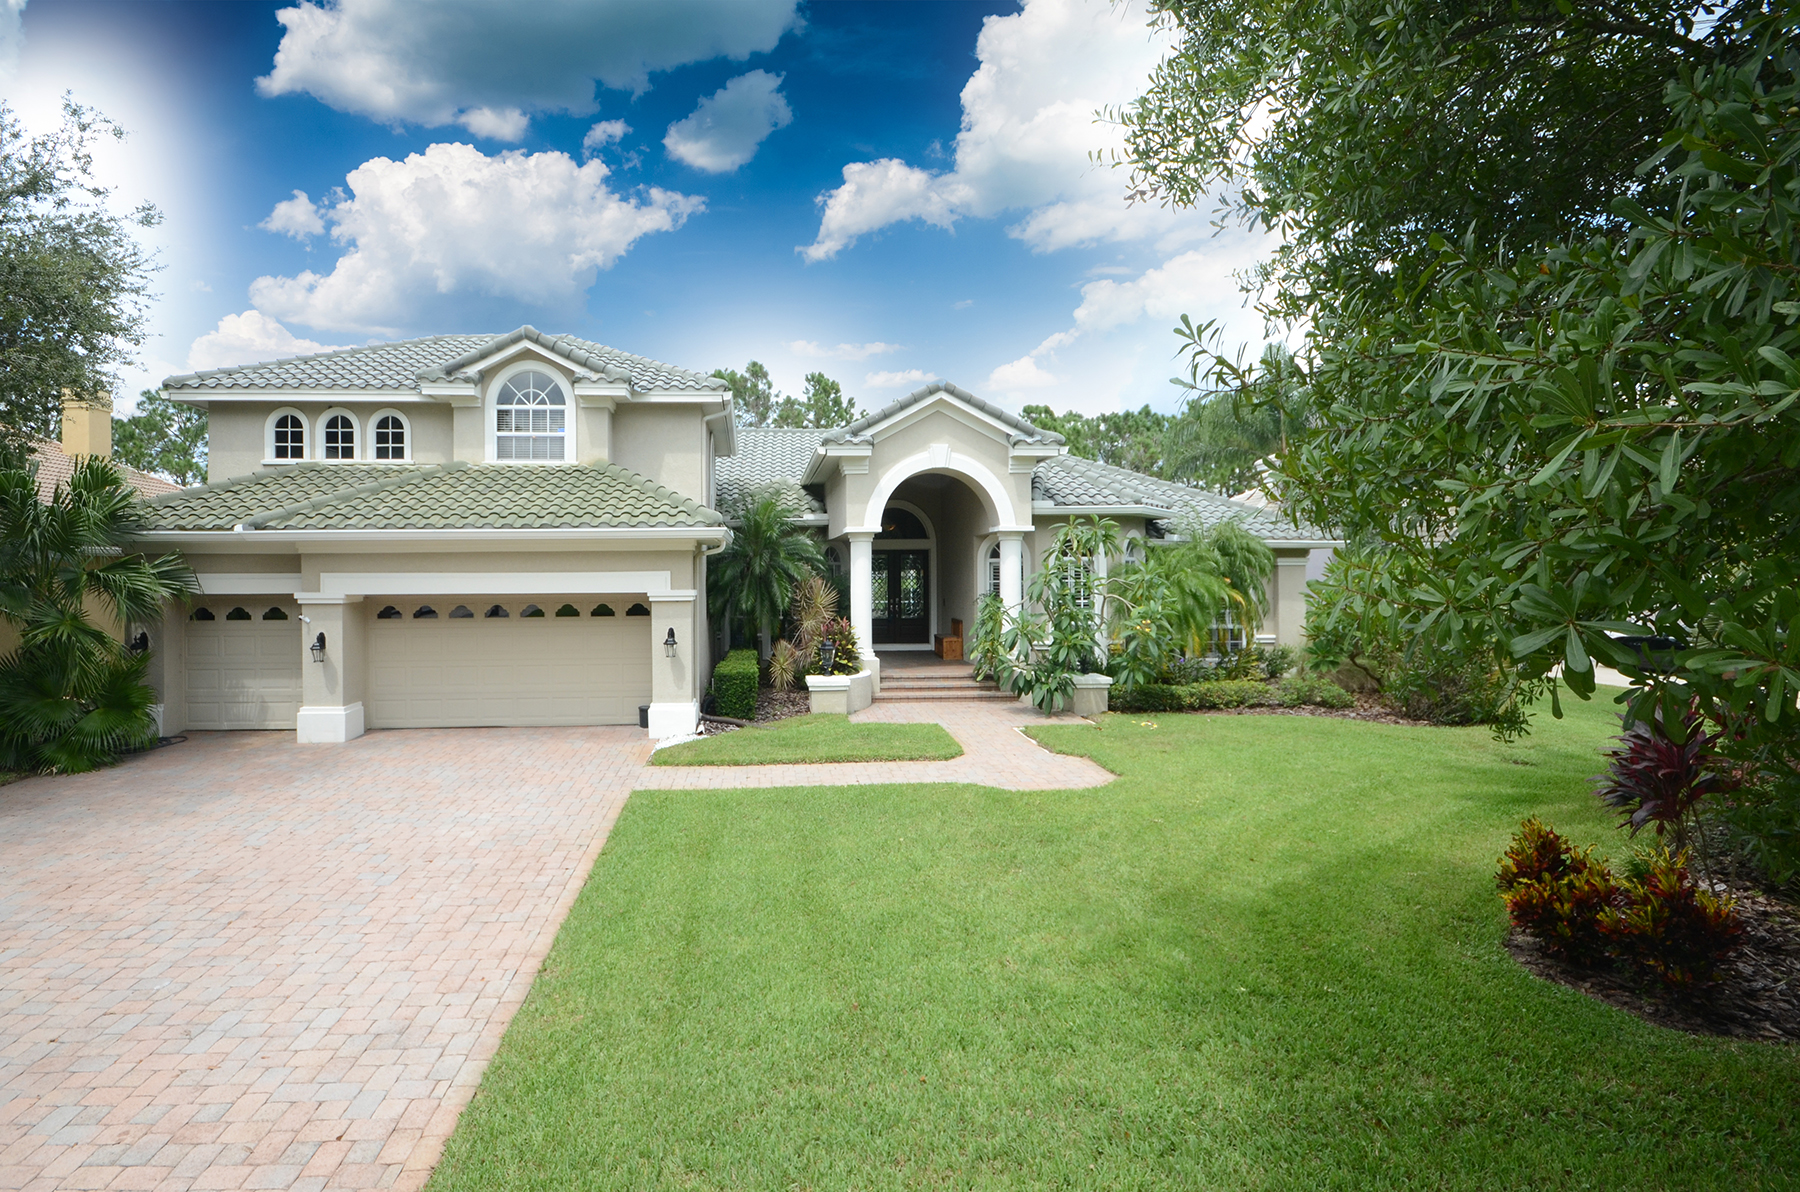 Single Family Home for Sale at VALRICO 5812 Peach Heather Trl Valrico, Florida, 33596 United States